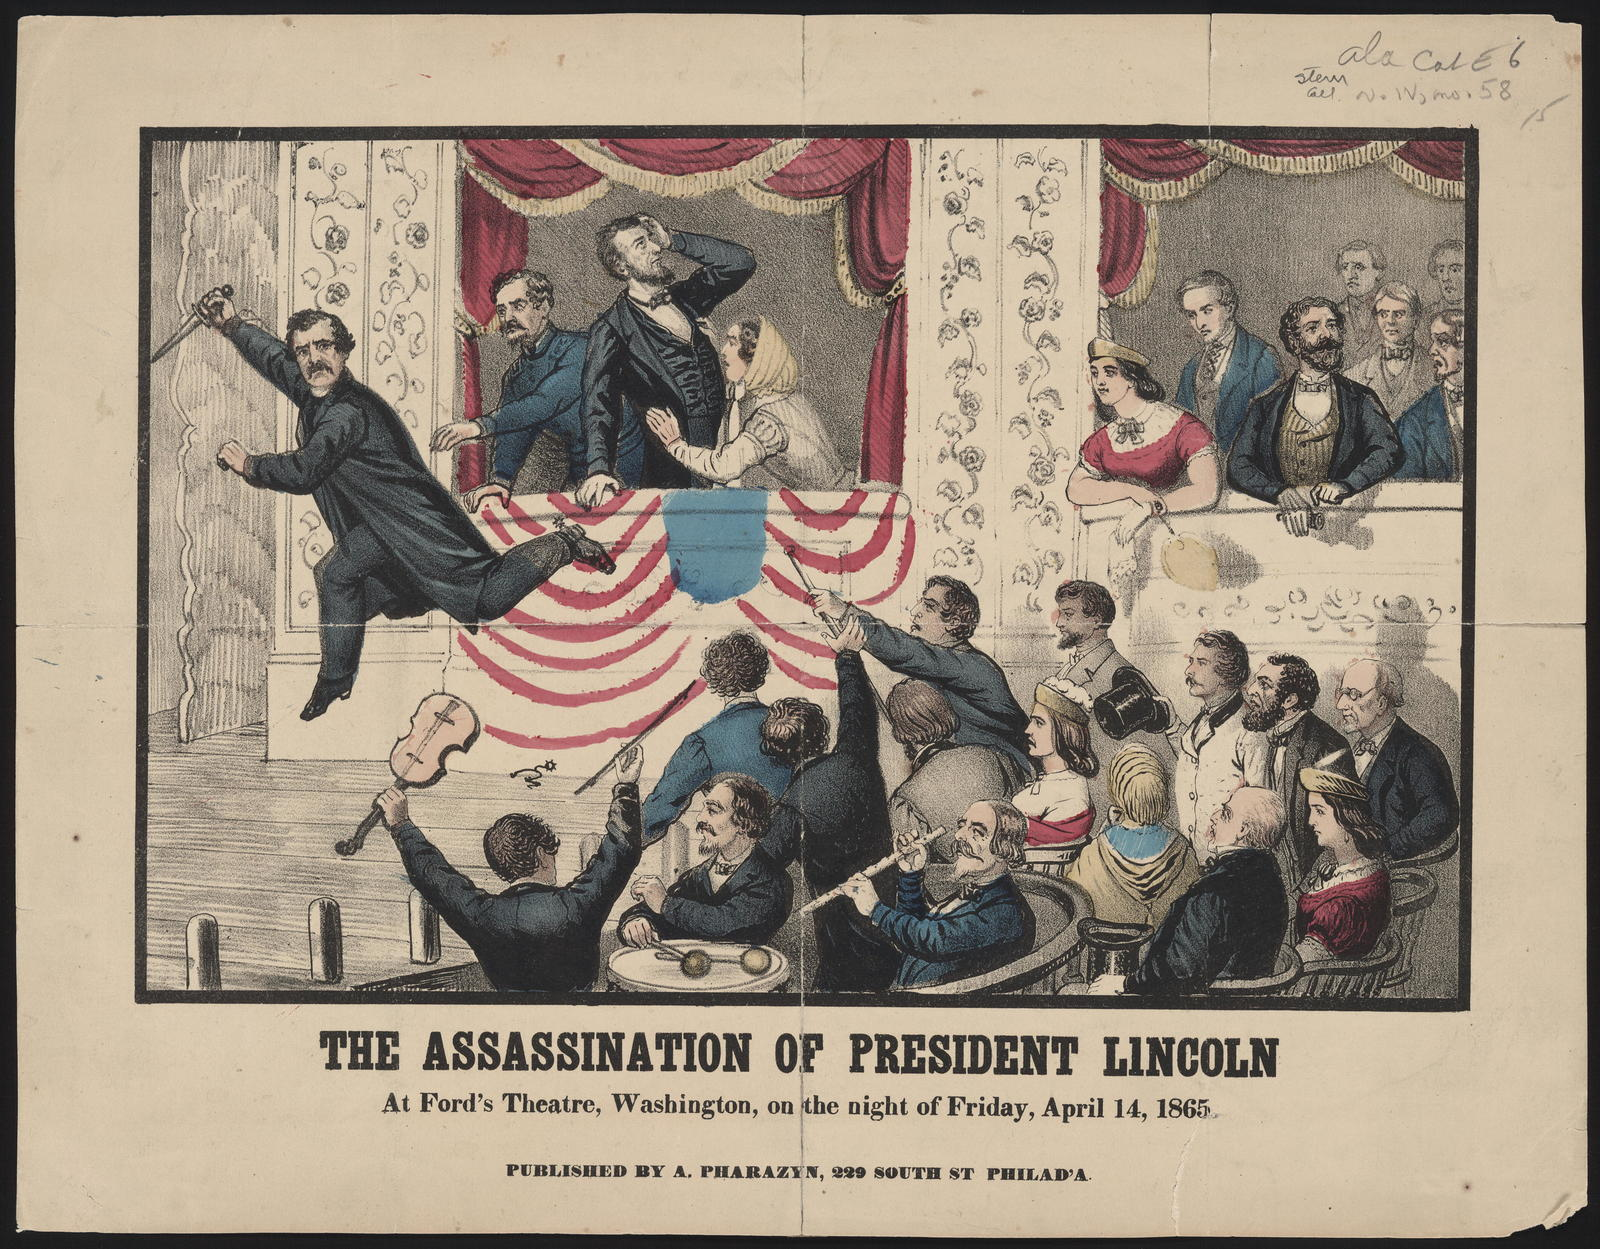 The assassination of President Lincoln. At Ford's Theatre, Washington, on the night of Friday, April 14, 1865, [Illustration].